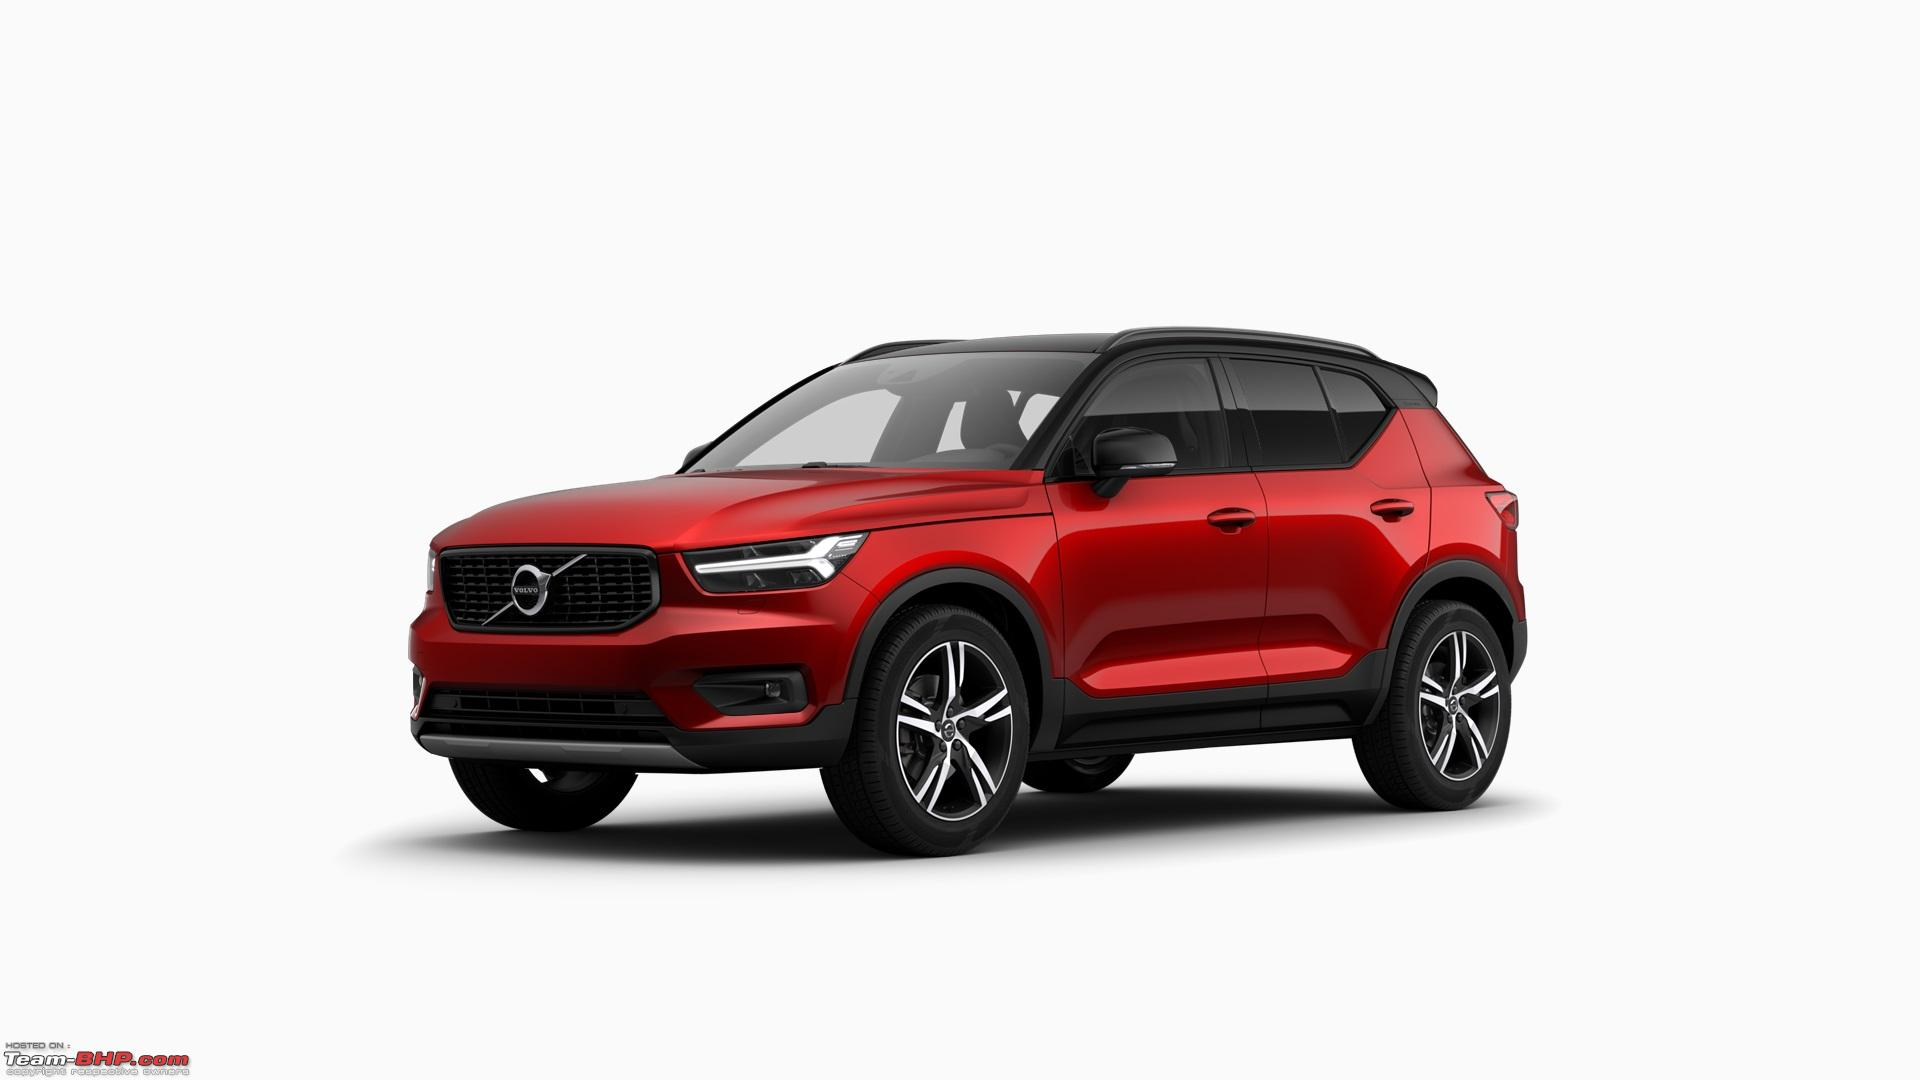 Volvo Xc40 Launch Date >> Volvo India lists the XC40 SUV on its website - Team-BHP